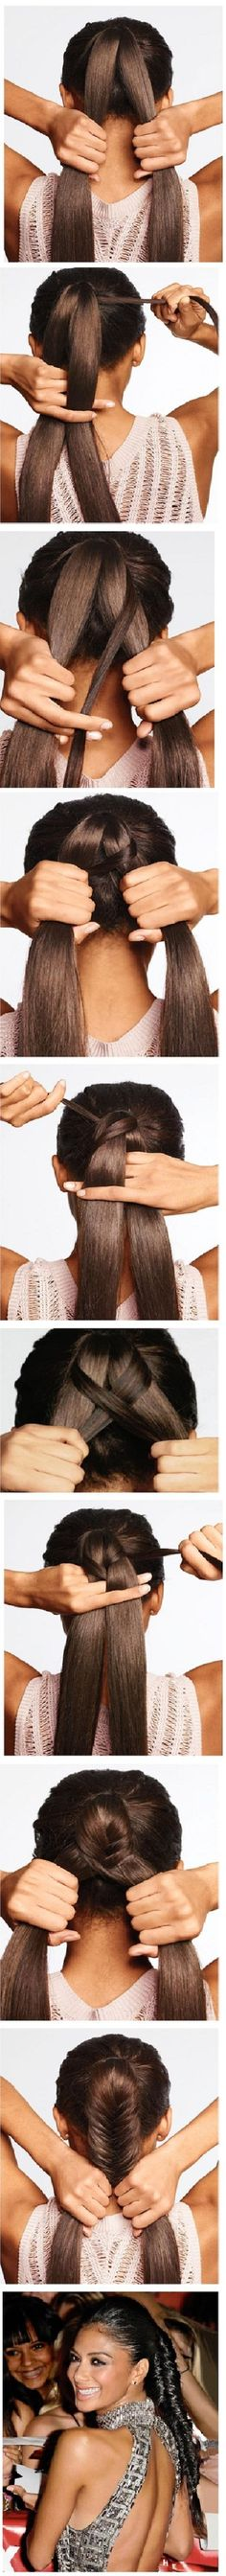 Nicole Scherzinger's fishtail braided Hairstyle